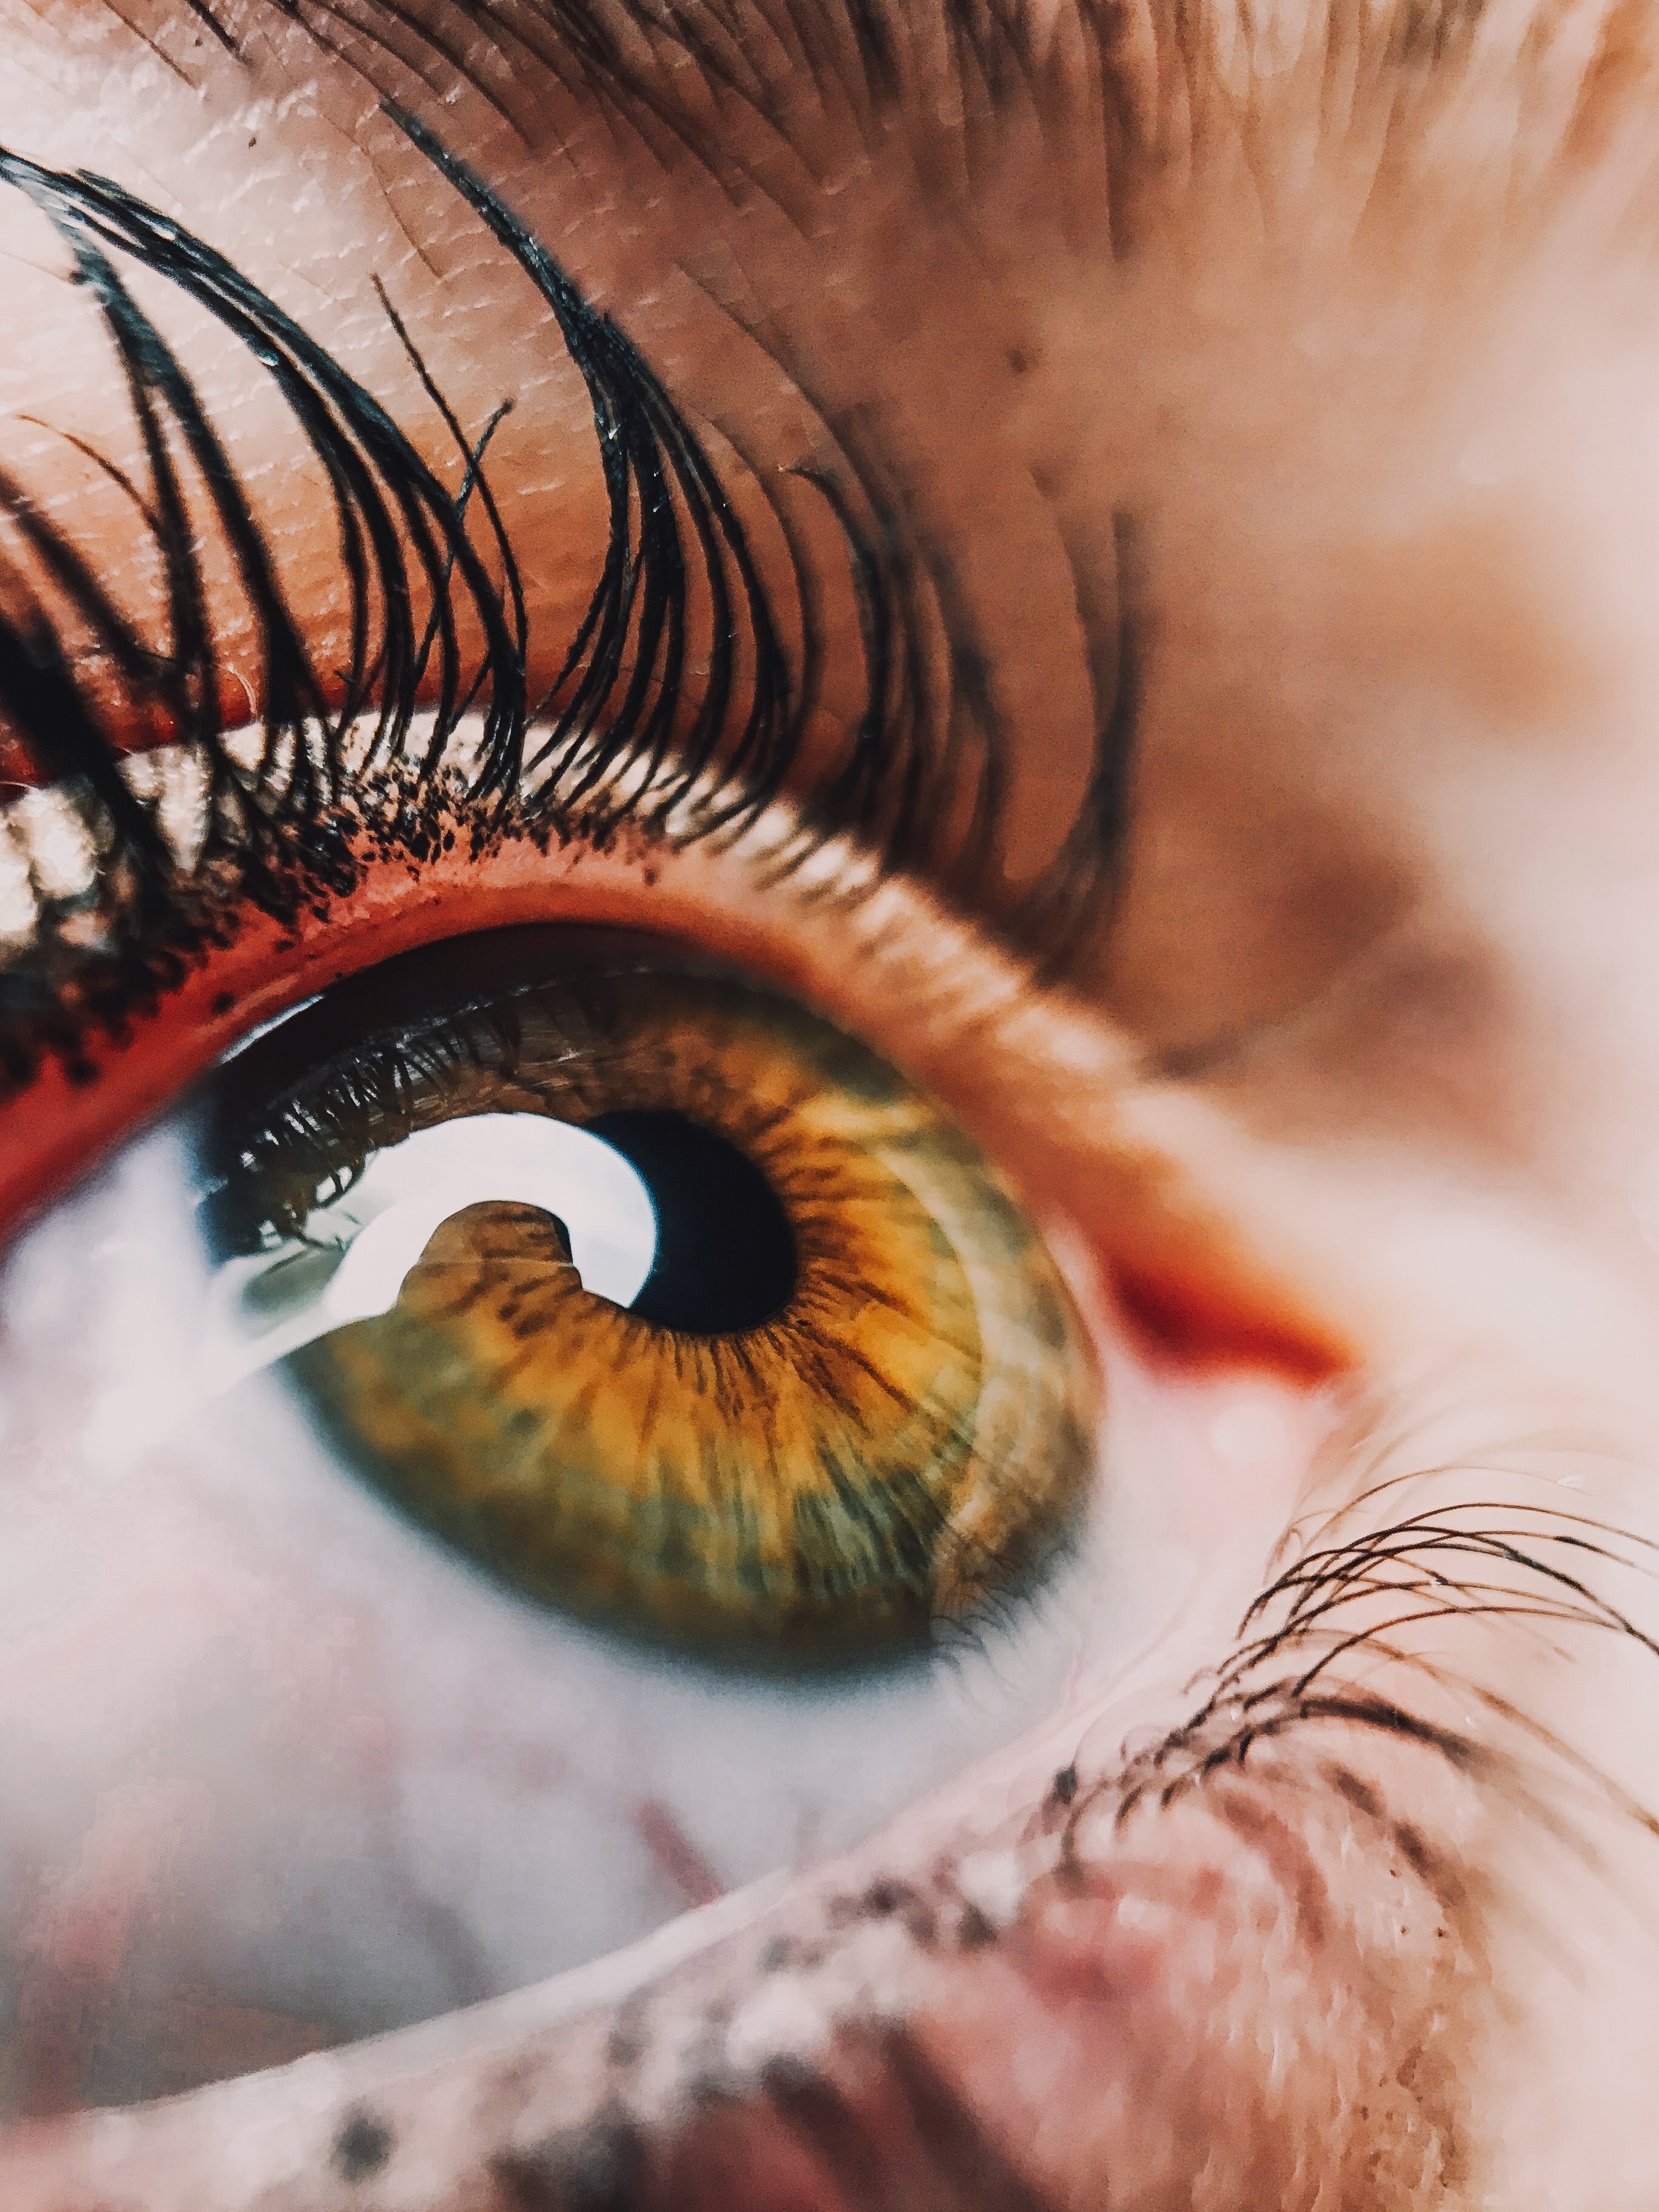 """Review 2: """"Histopathological assessments reveal retinal vascular changes, inflammation, and gliosis in patients with lethal COVID-19"""""""